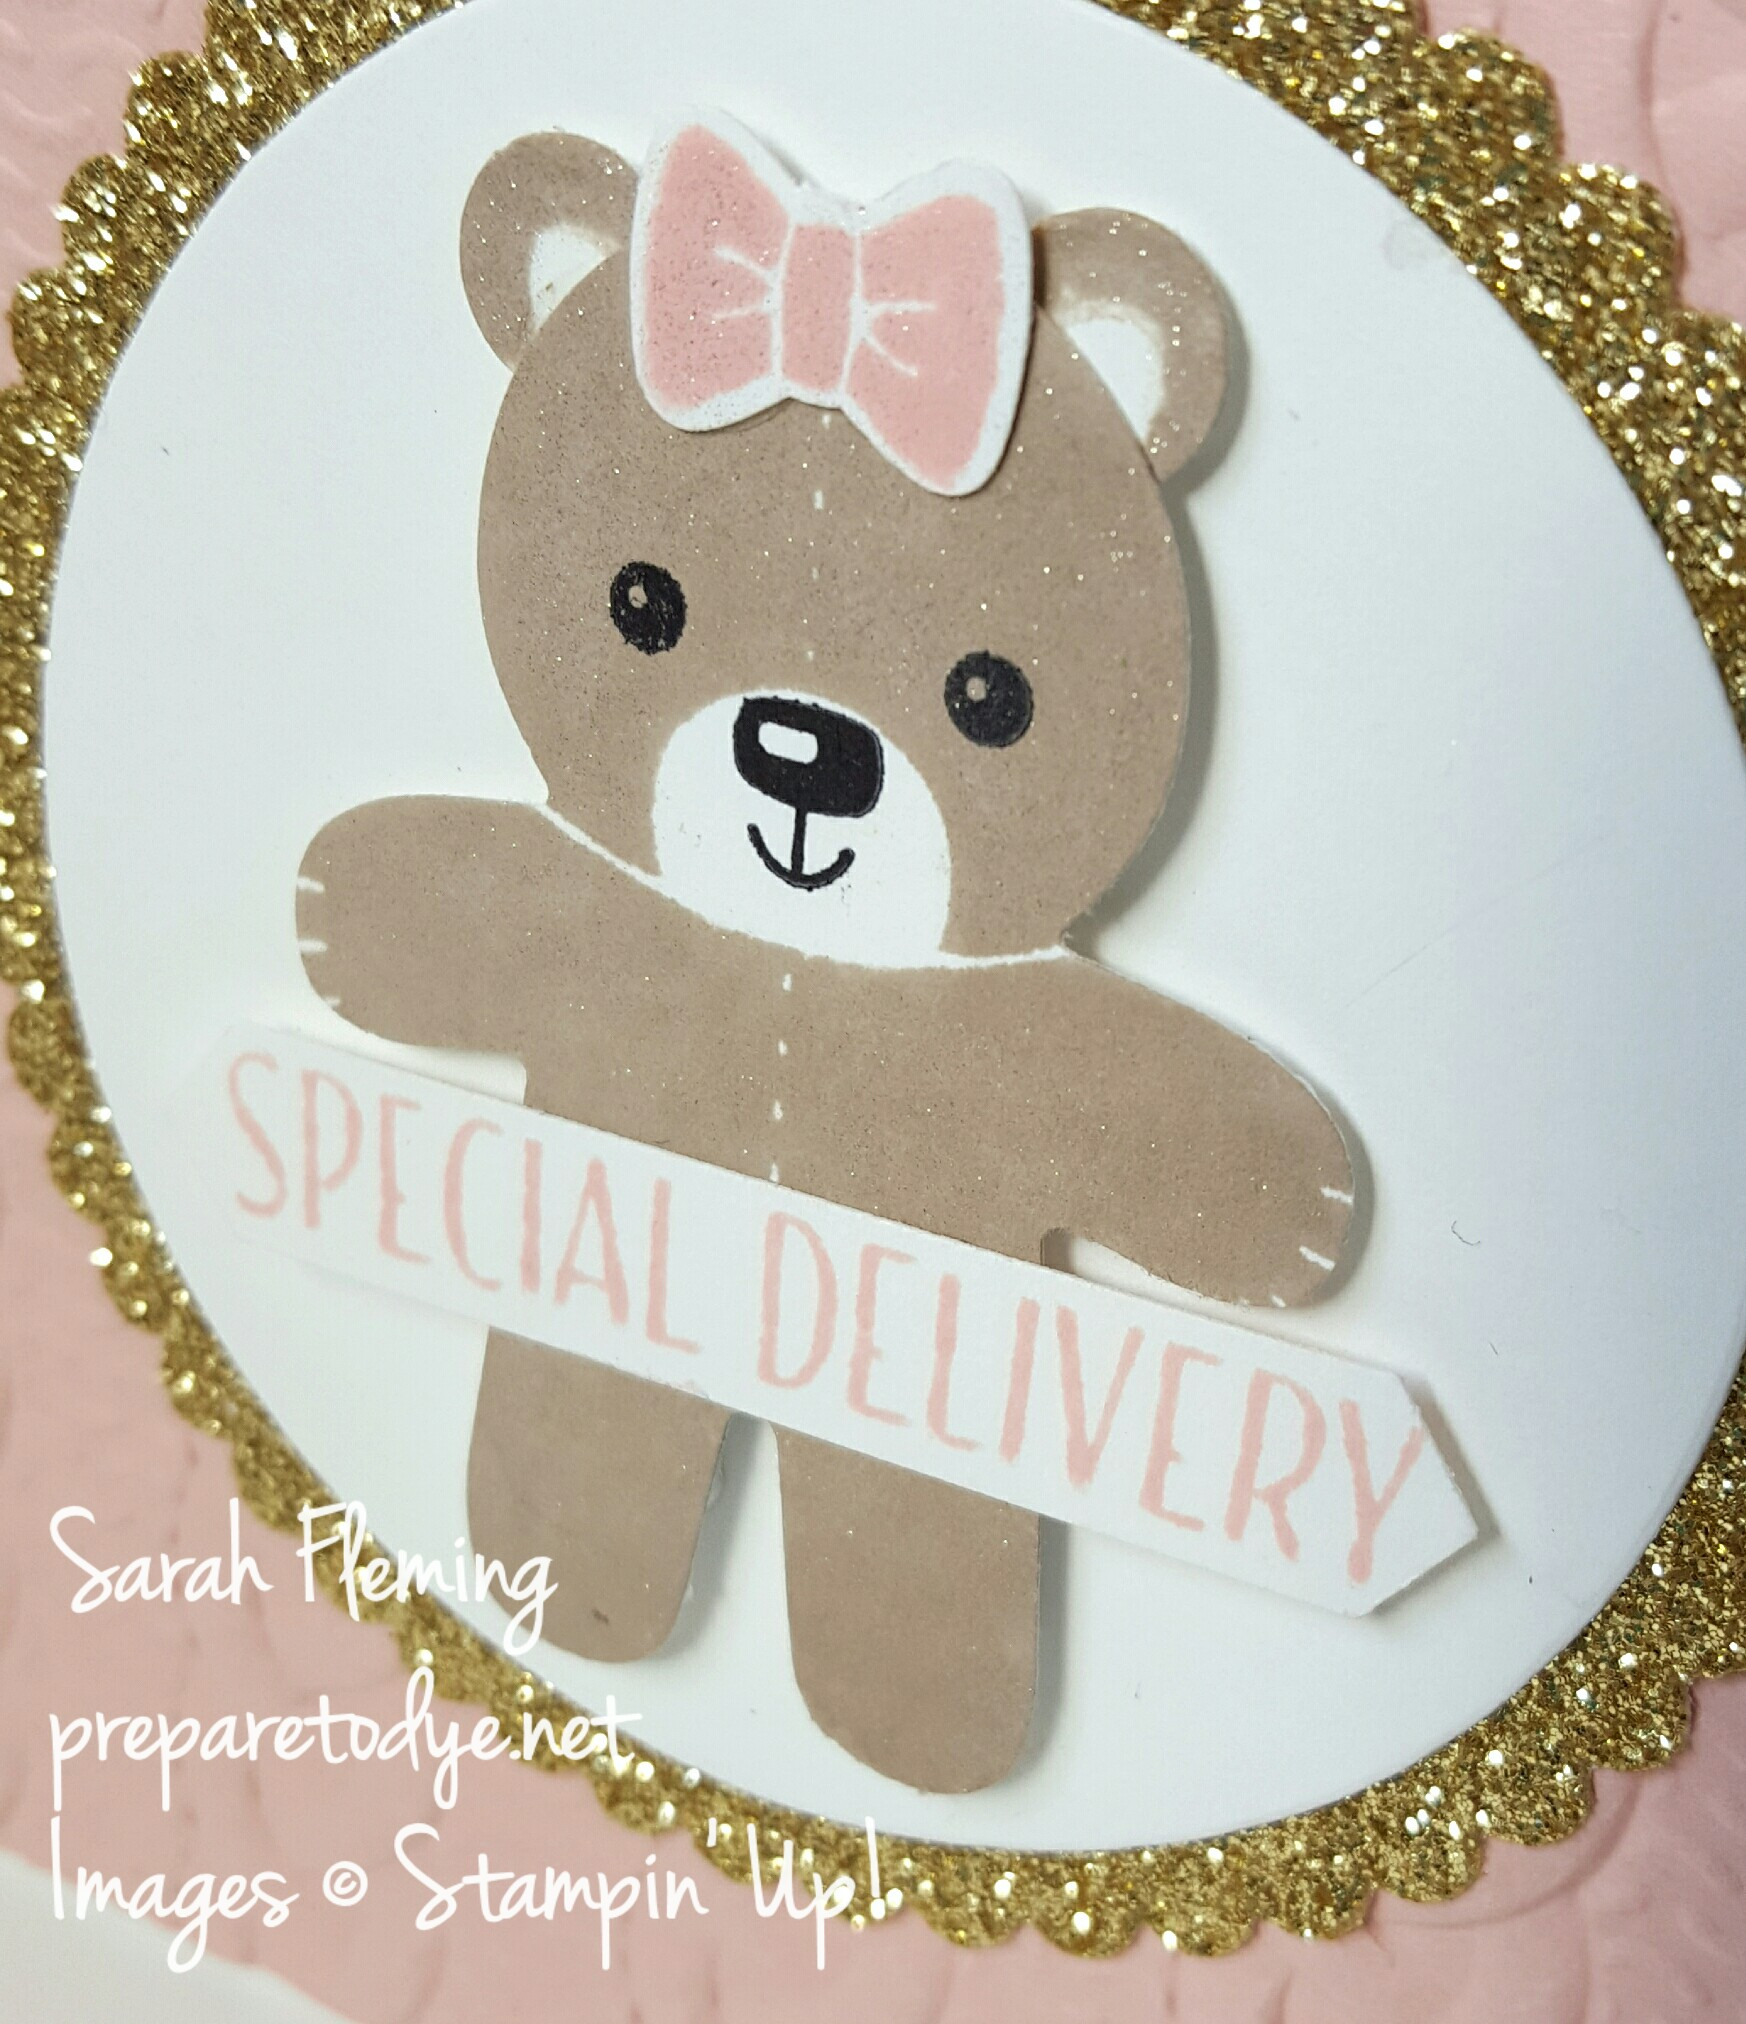 Stampin' Up! Cookie Cutter Christmas, Cable Knit Embossing Folder, Tin of Tags - using all Holiday Catalog items to make a gorgeous baby card! - Sarah Fleming - Prepare to Dye Papercrafts